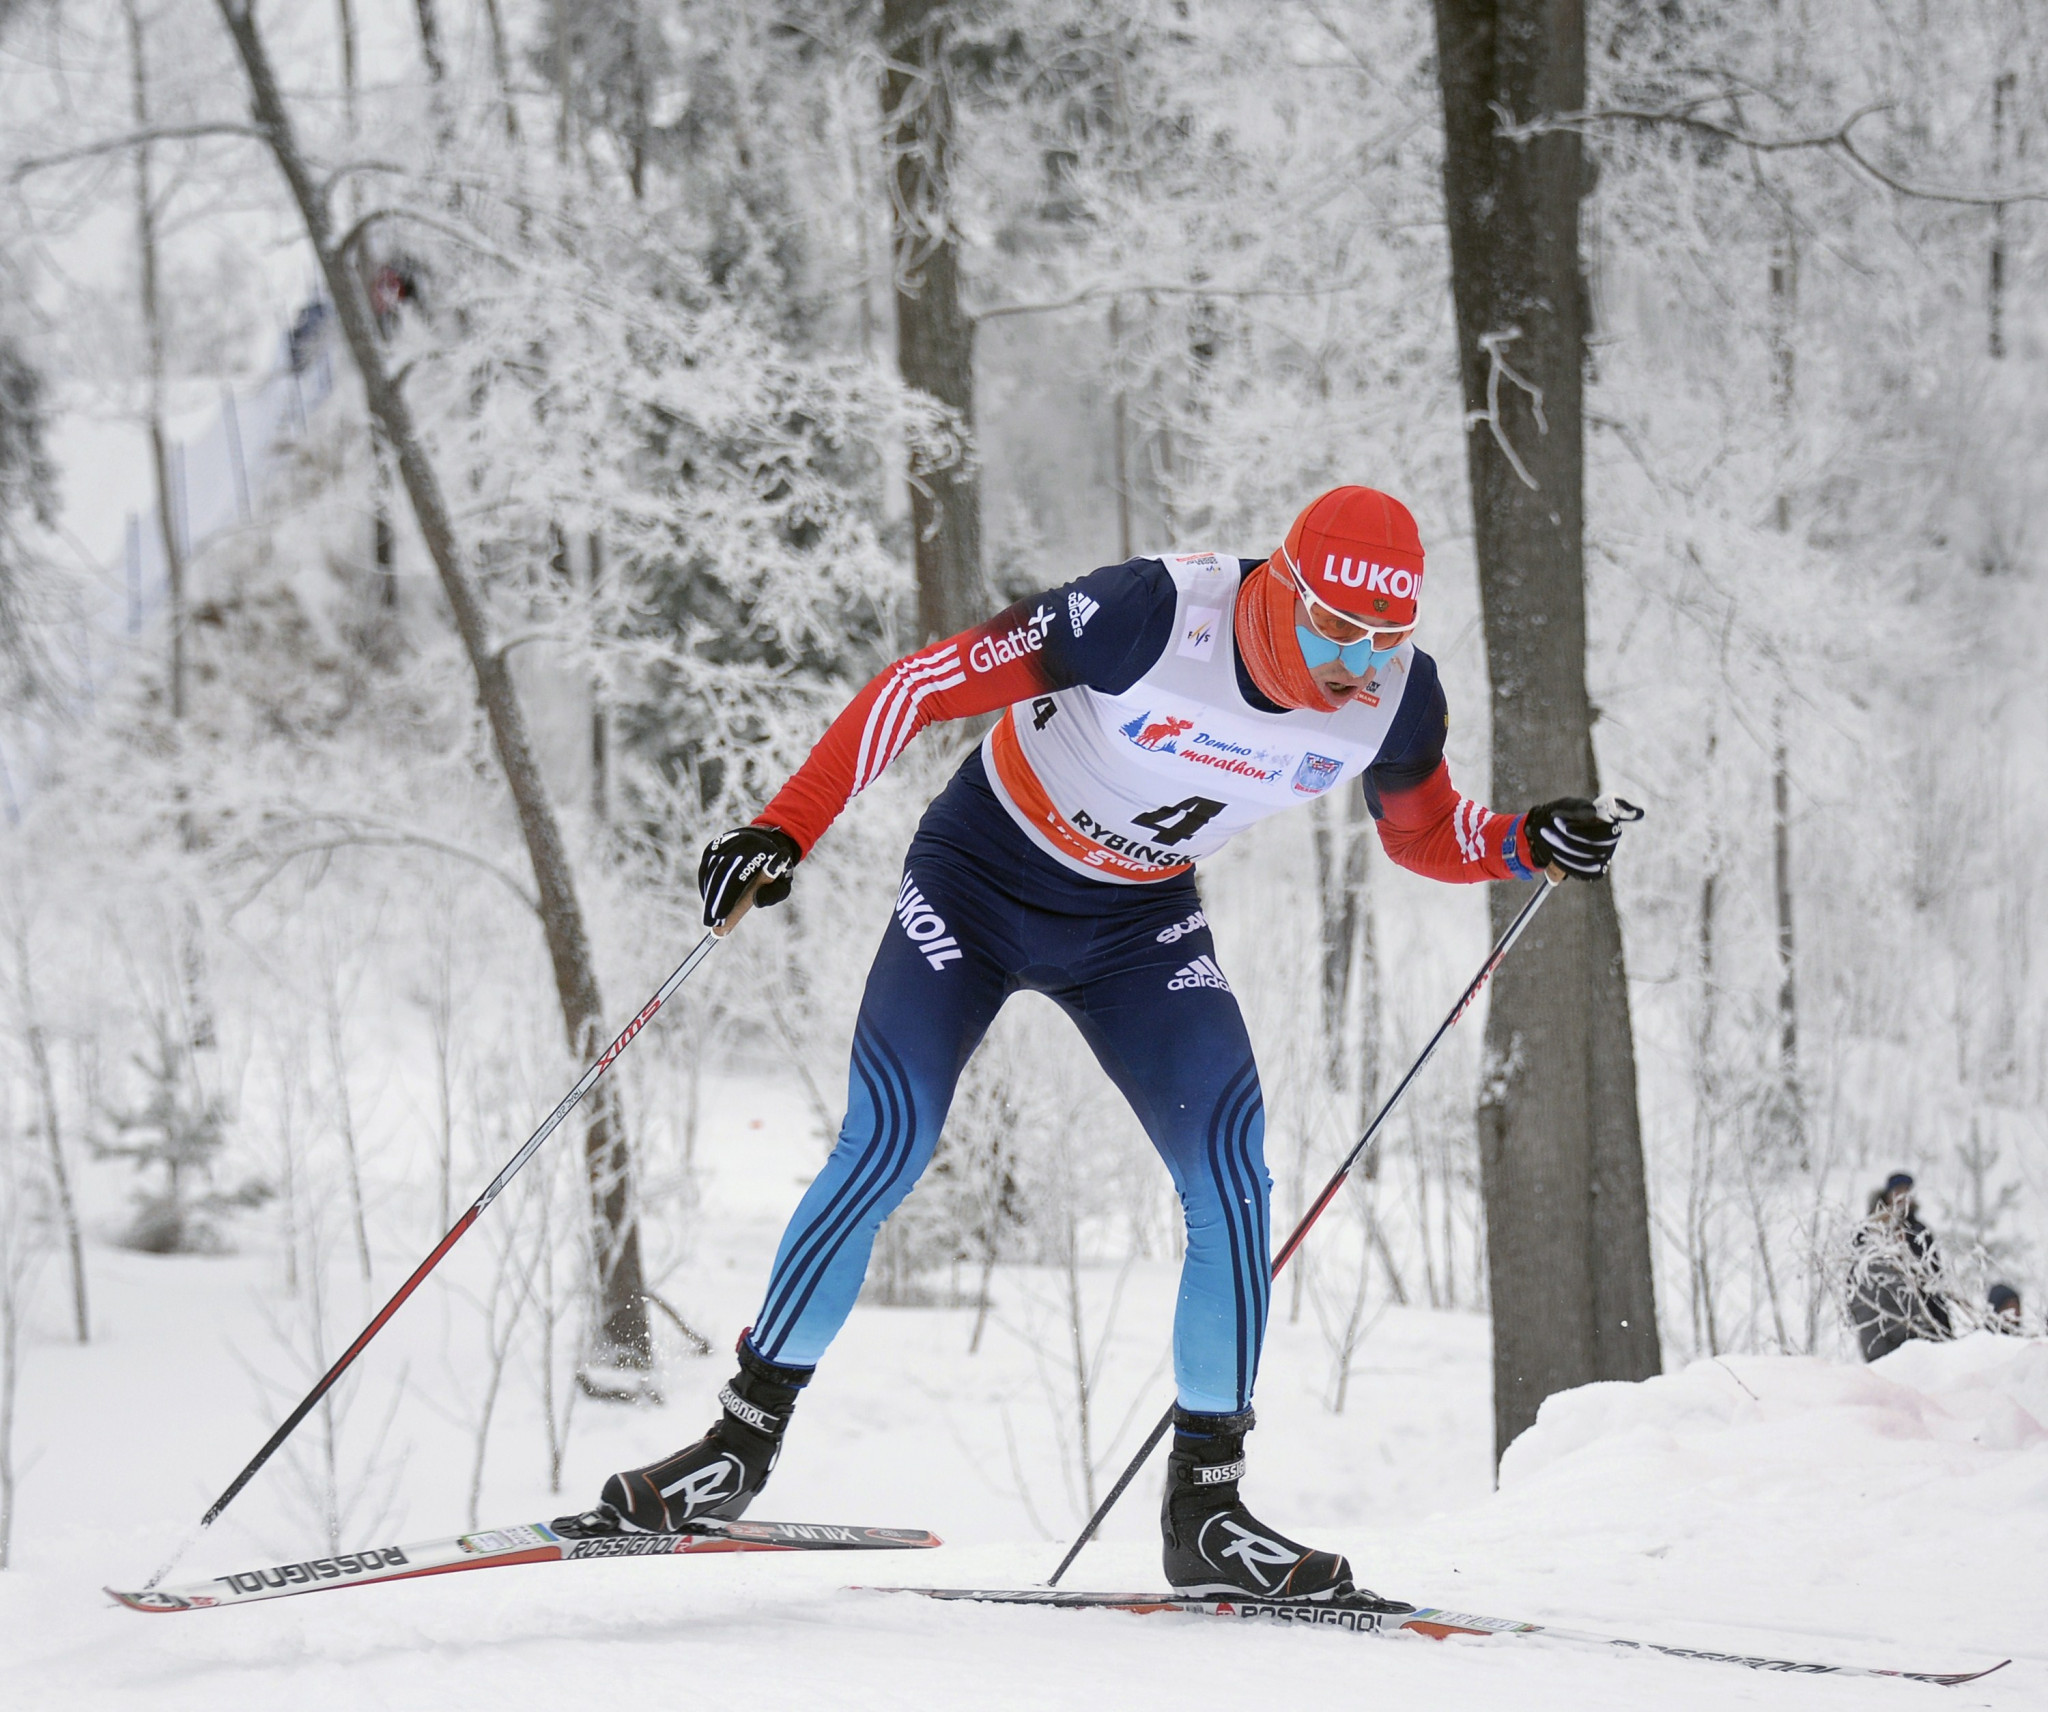 FIS to provide update on Russian skiers as ice hockey players set to appear before Oswald Commission